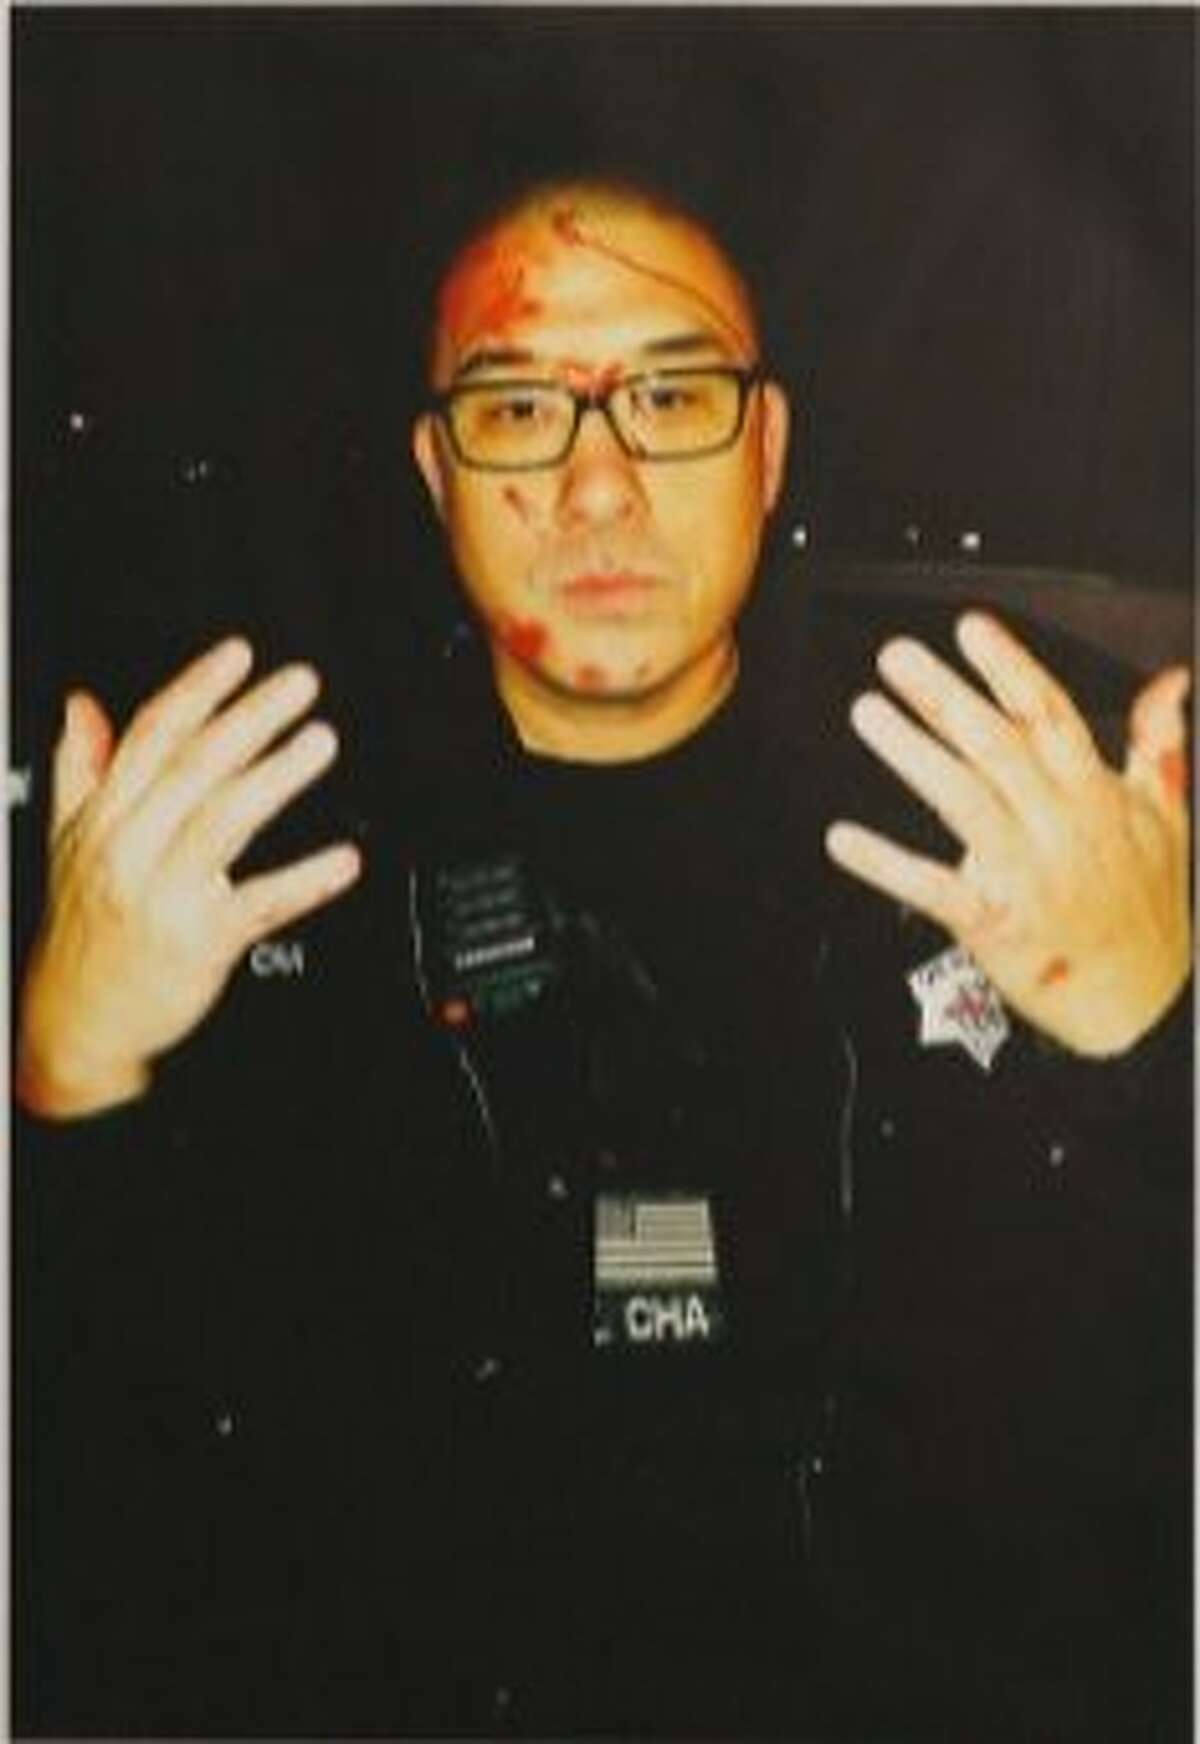 Officer Kenneth Cha was involved in both of San Francisco's only two police shootings in 2017, according to the public defender's office. Here, Cha displays injuries allegedly sustained in a Jan. 6 confrontation with a mentally ill man at his Ocean View home that ended in Cha shooting and seriously injuring the man.